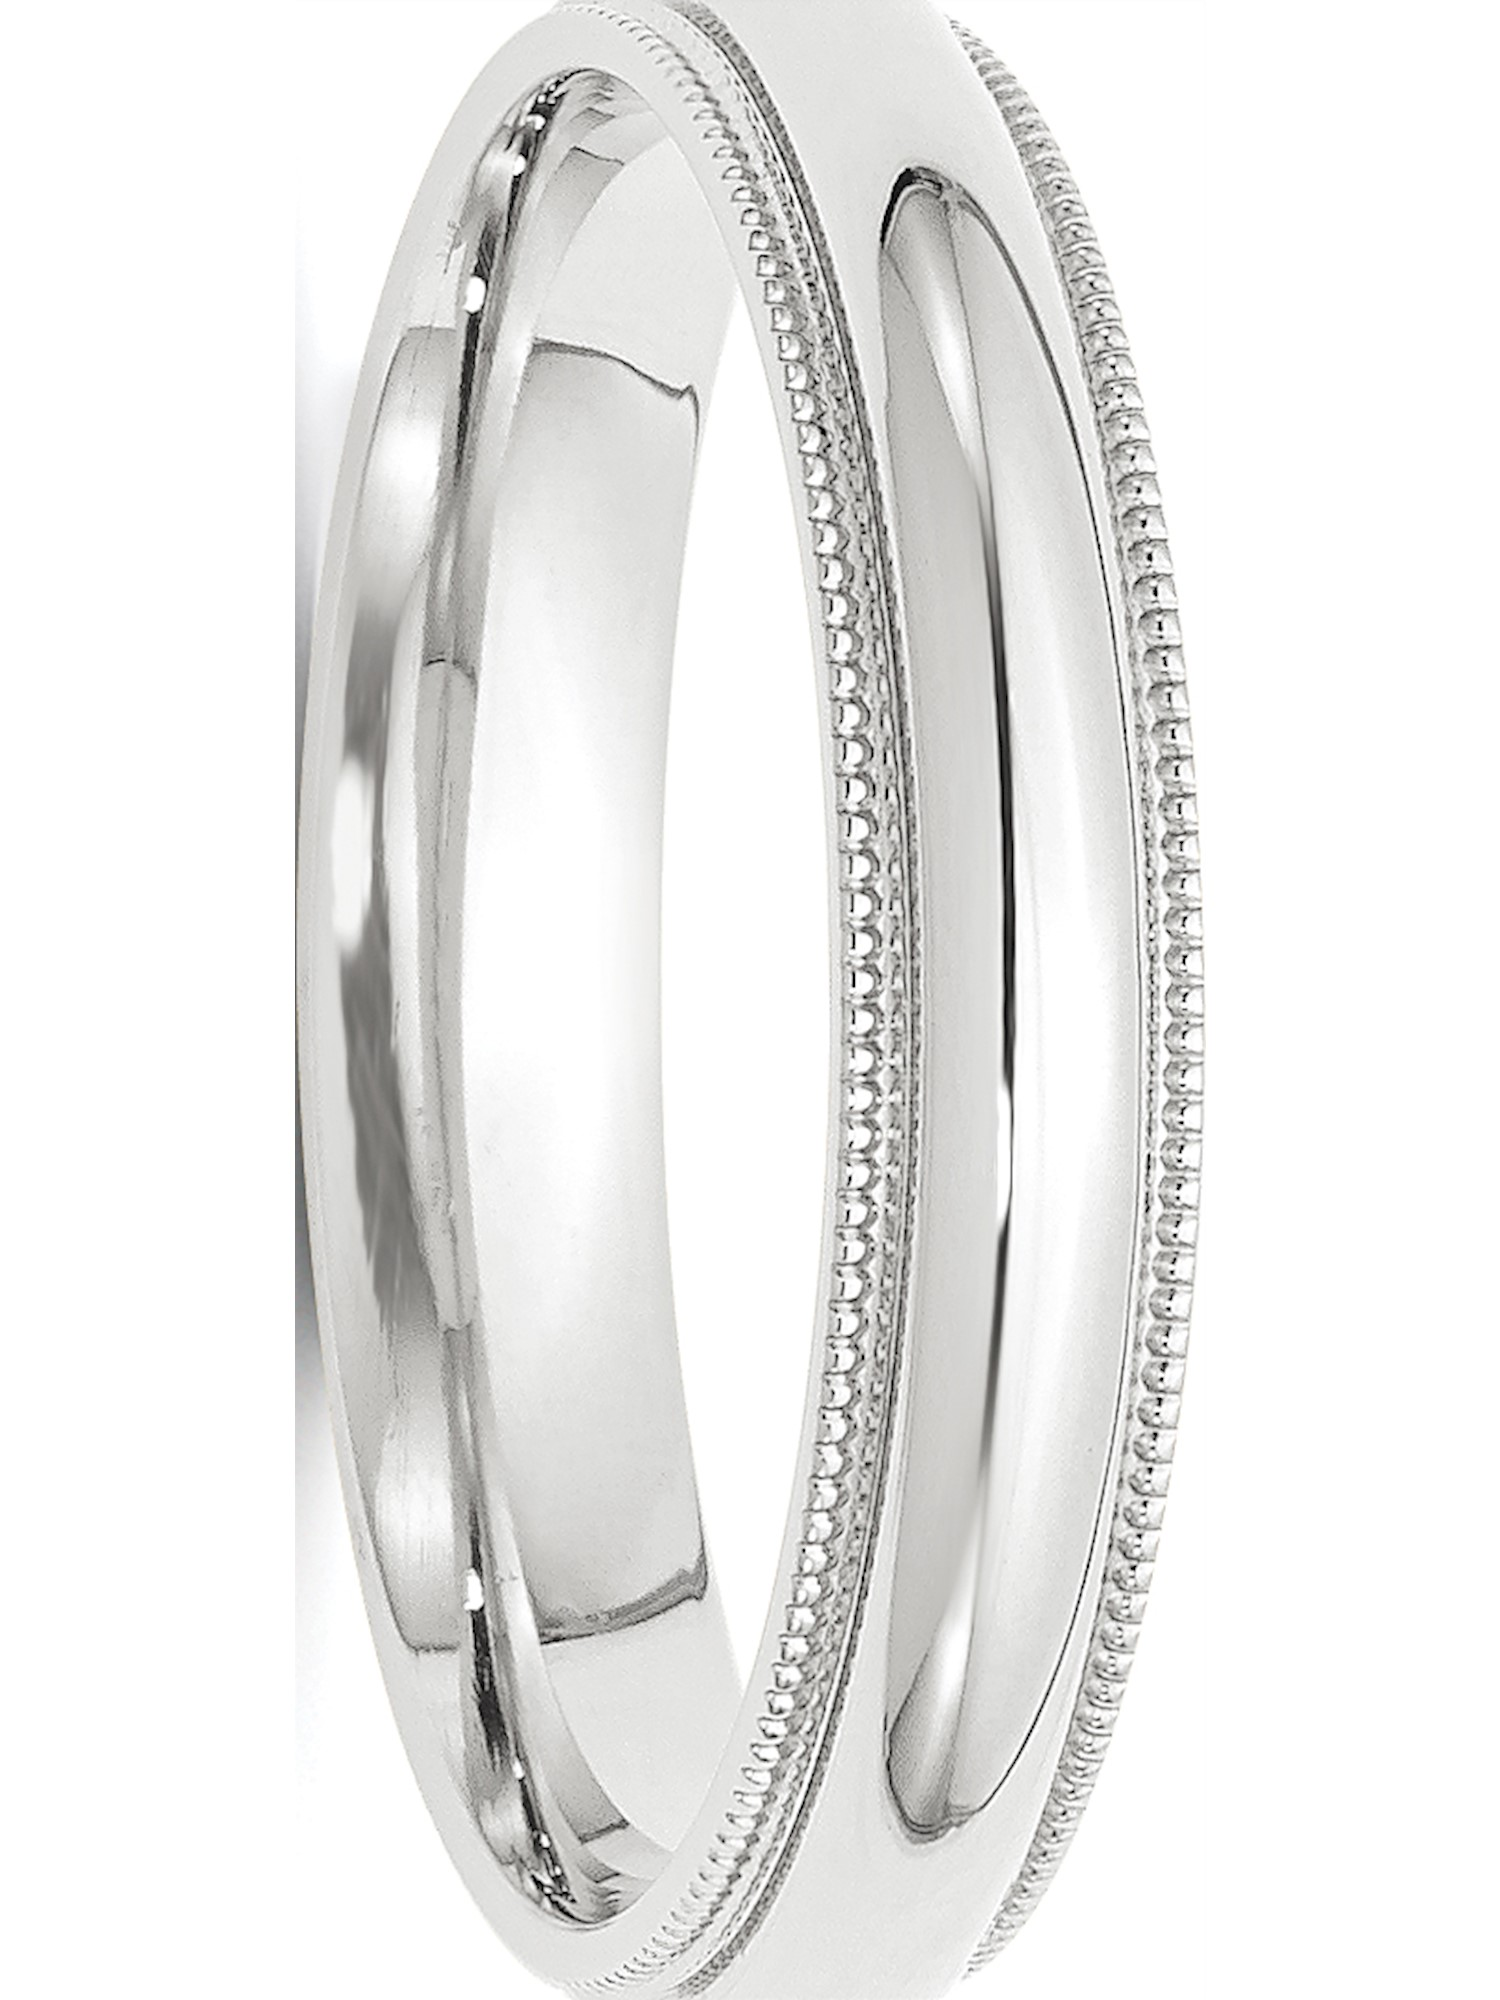 10k White Gold 4mm Milgrain Comfort Fit Band Fine Jewelry Ideal Gifts For Women